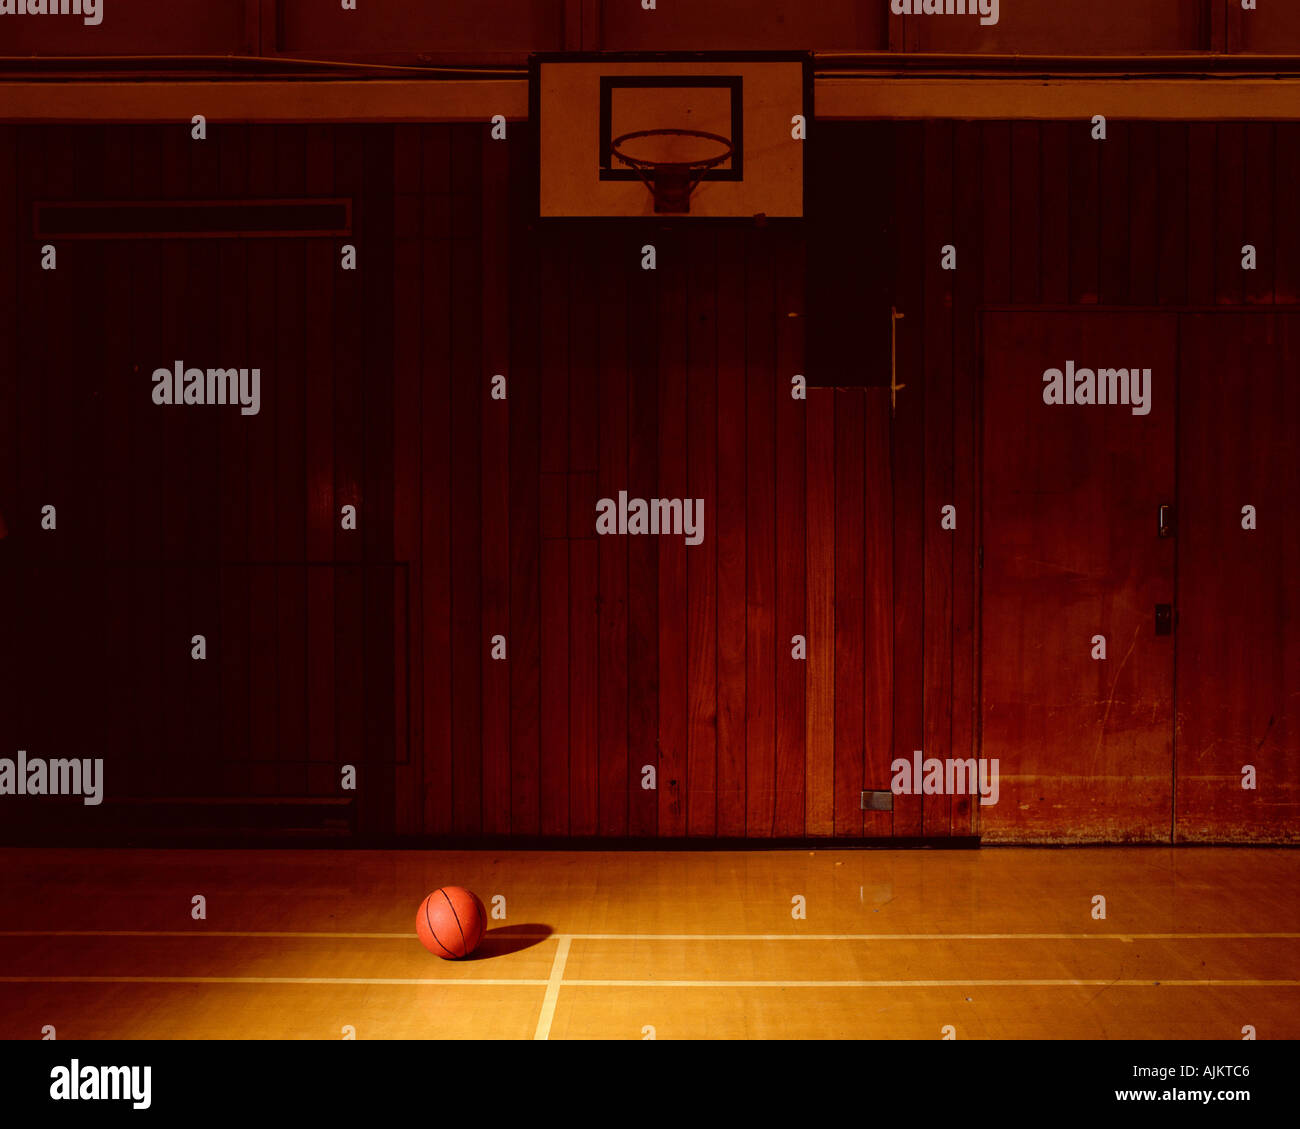 Leere Basketballplatz Stockbild